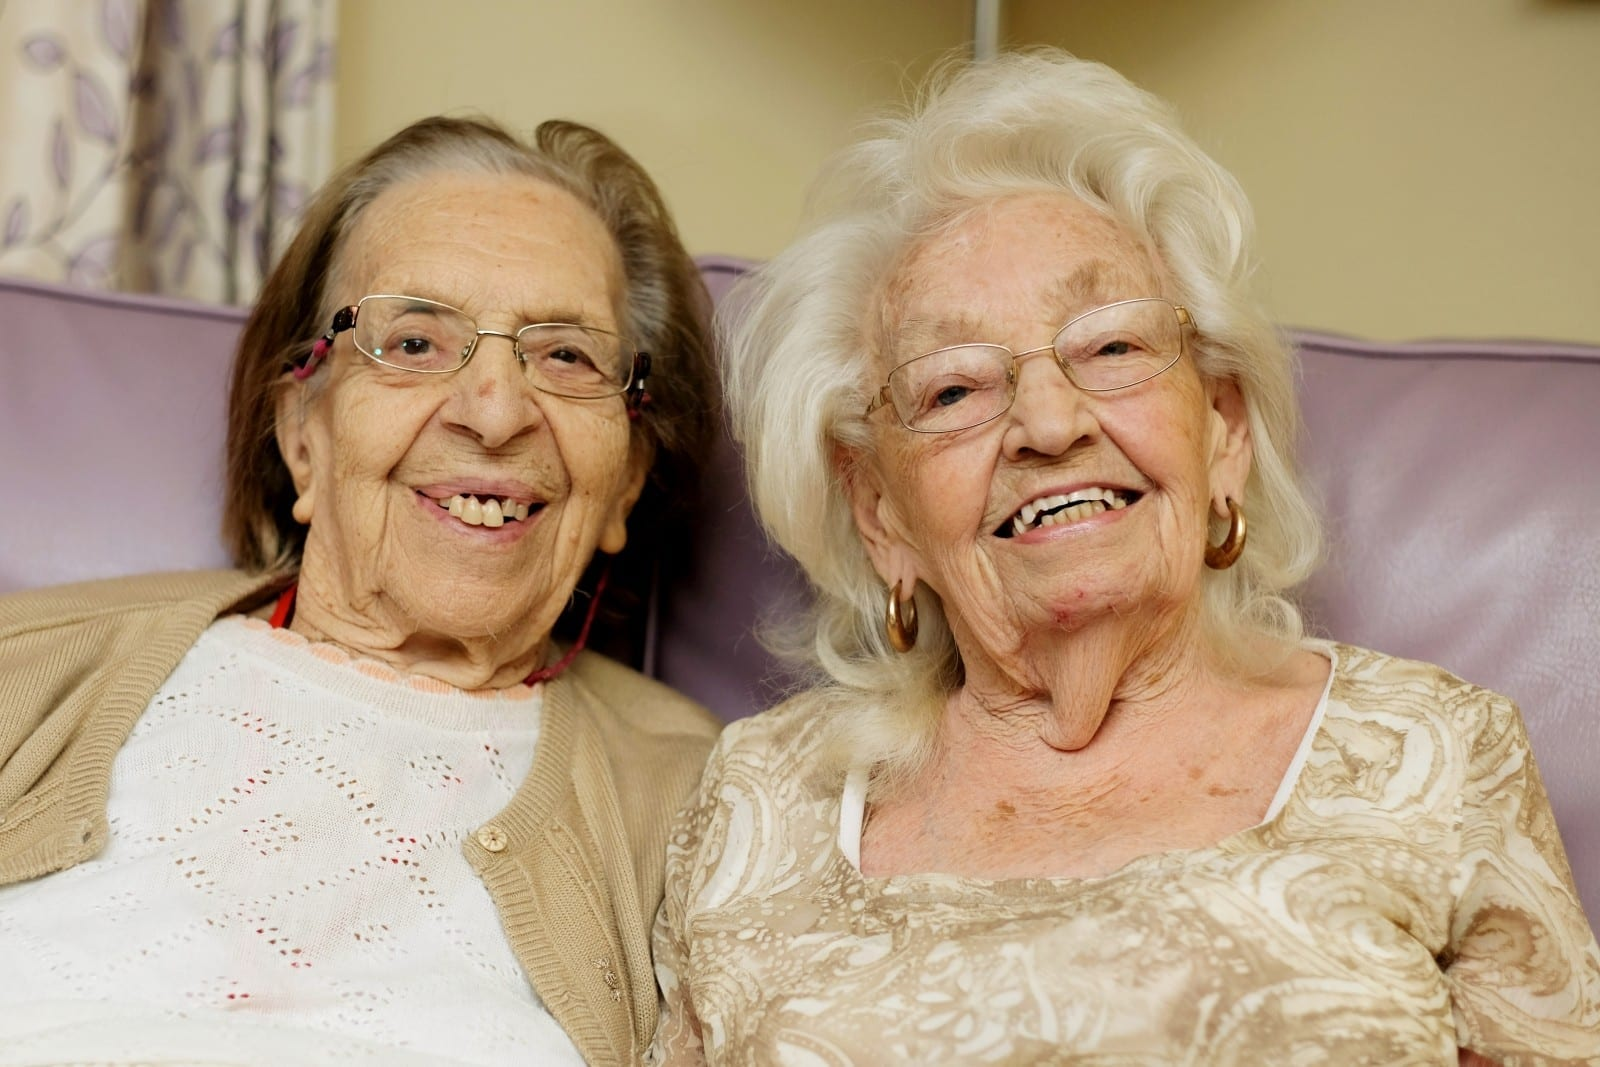 'We're Like Giggling School Girls' – Best Friends Who Have Been Inseparable For Almost 80 Years Move Into The Same Care Home